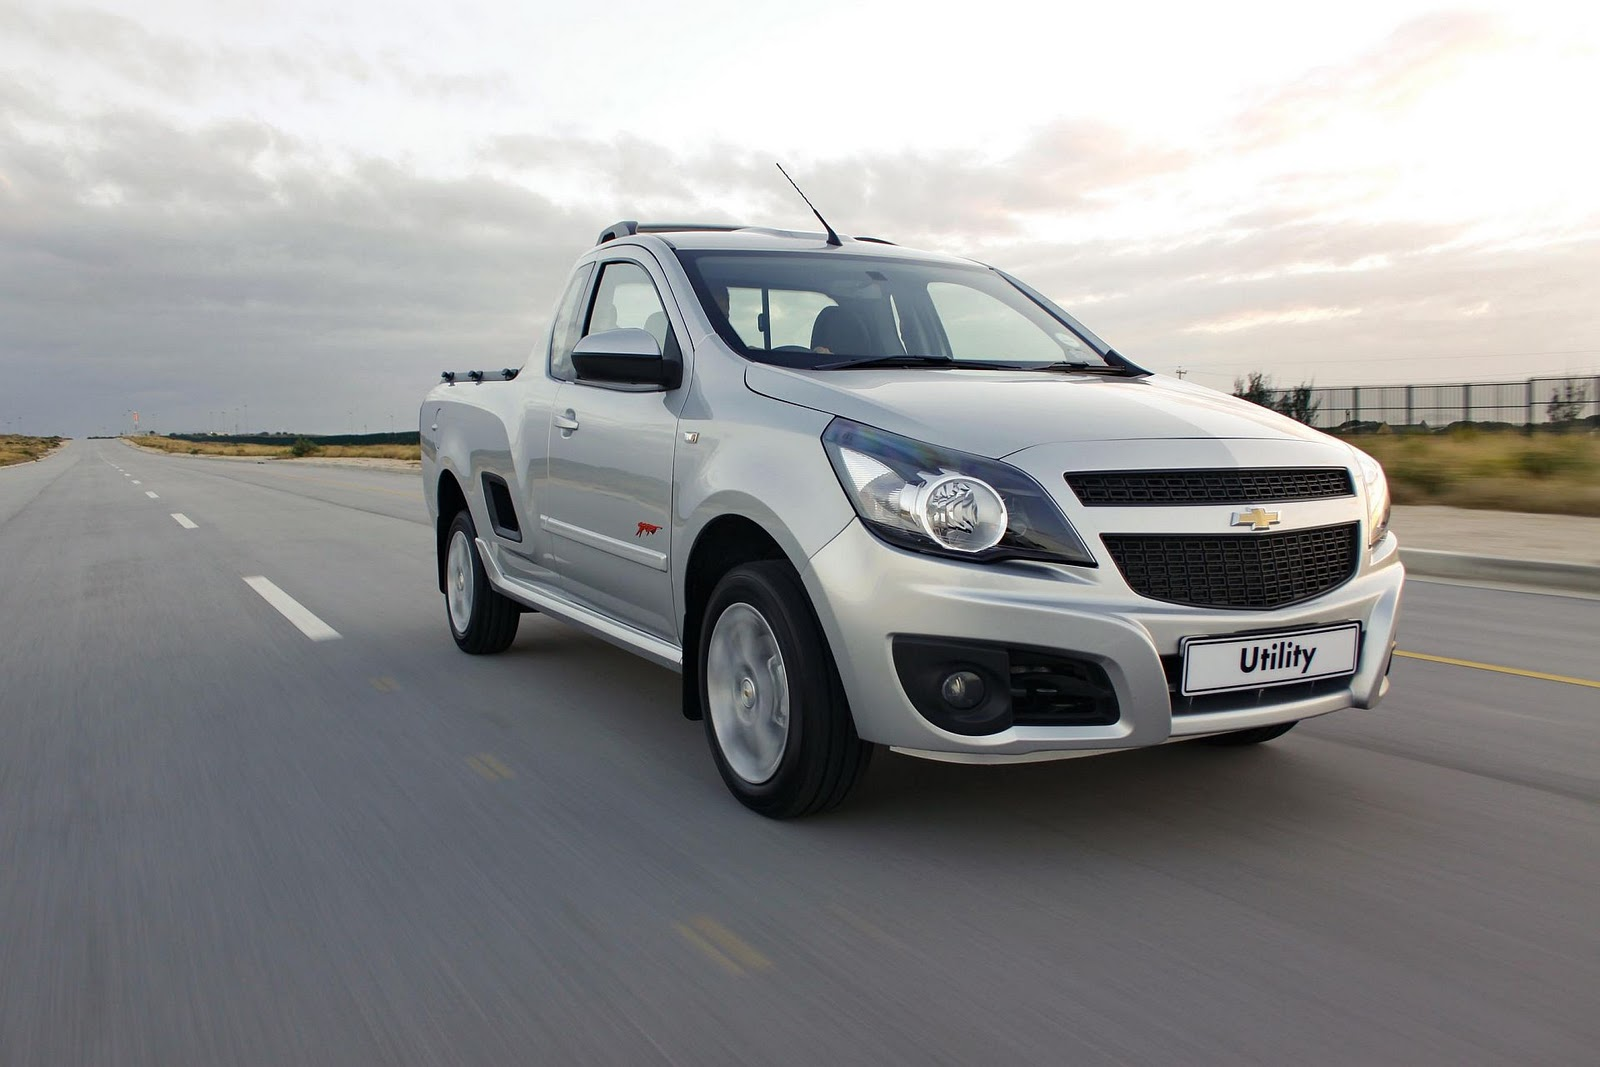 IN4RIDE: BRAND NEW CHEVROLET UTILITY DRIVEN